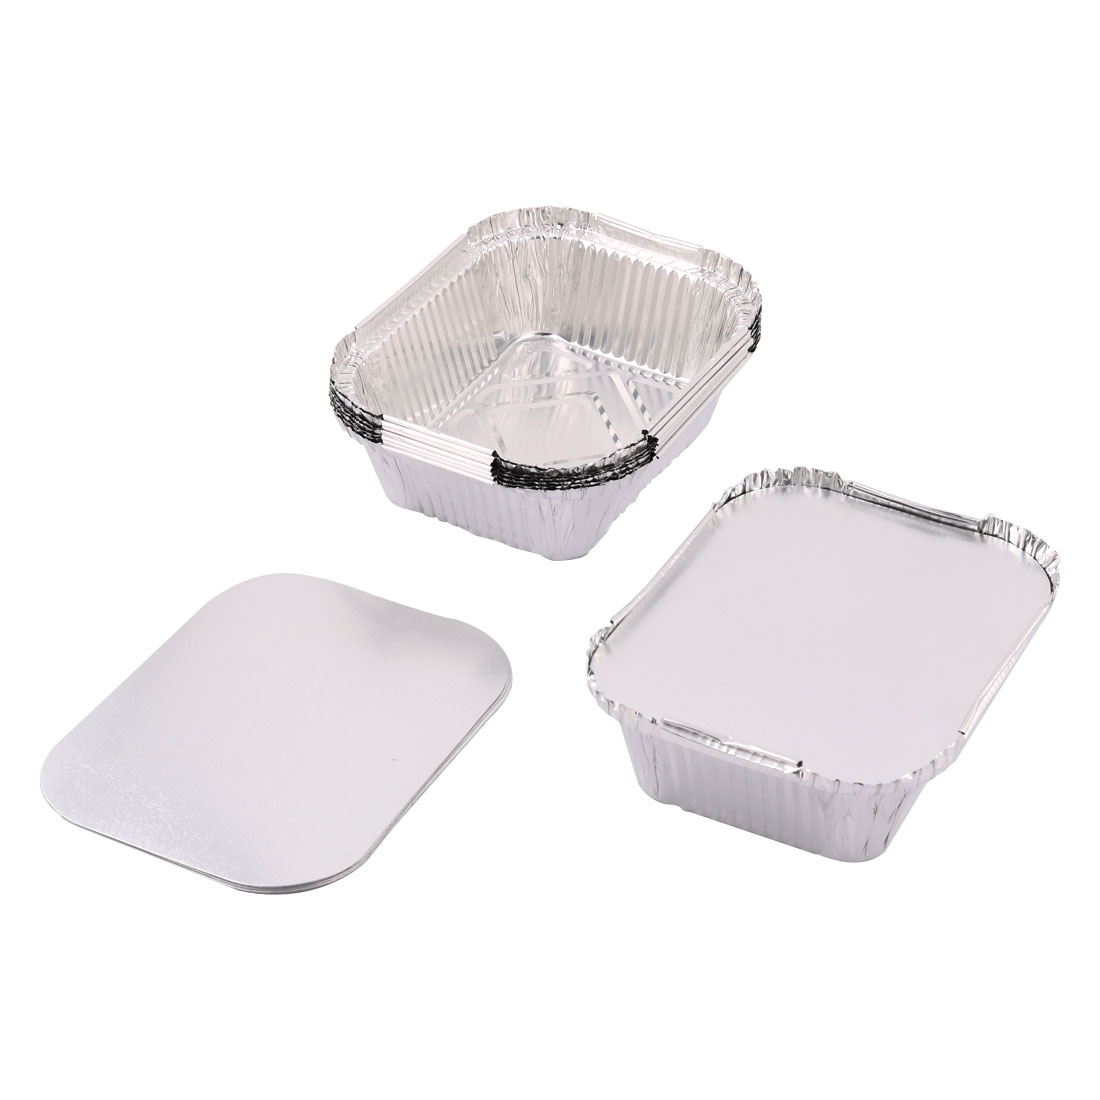 Dinnerware Aluminum Foil Disposable Food Baking Container Silver Tone 440ml 8pcs